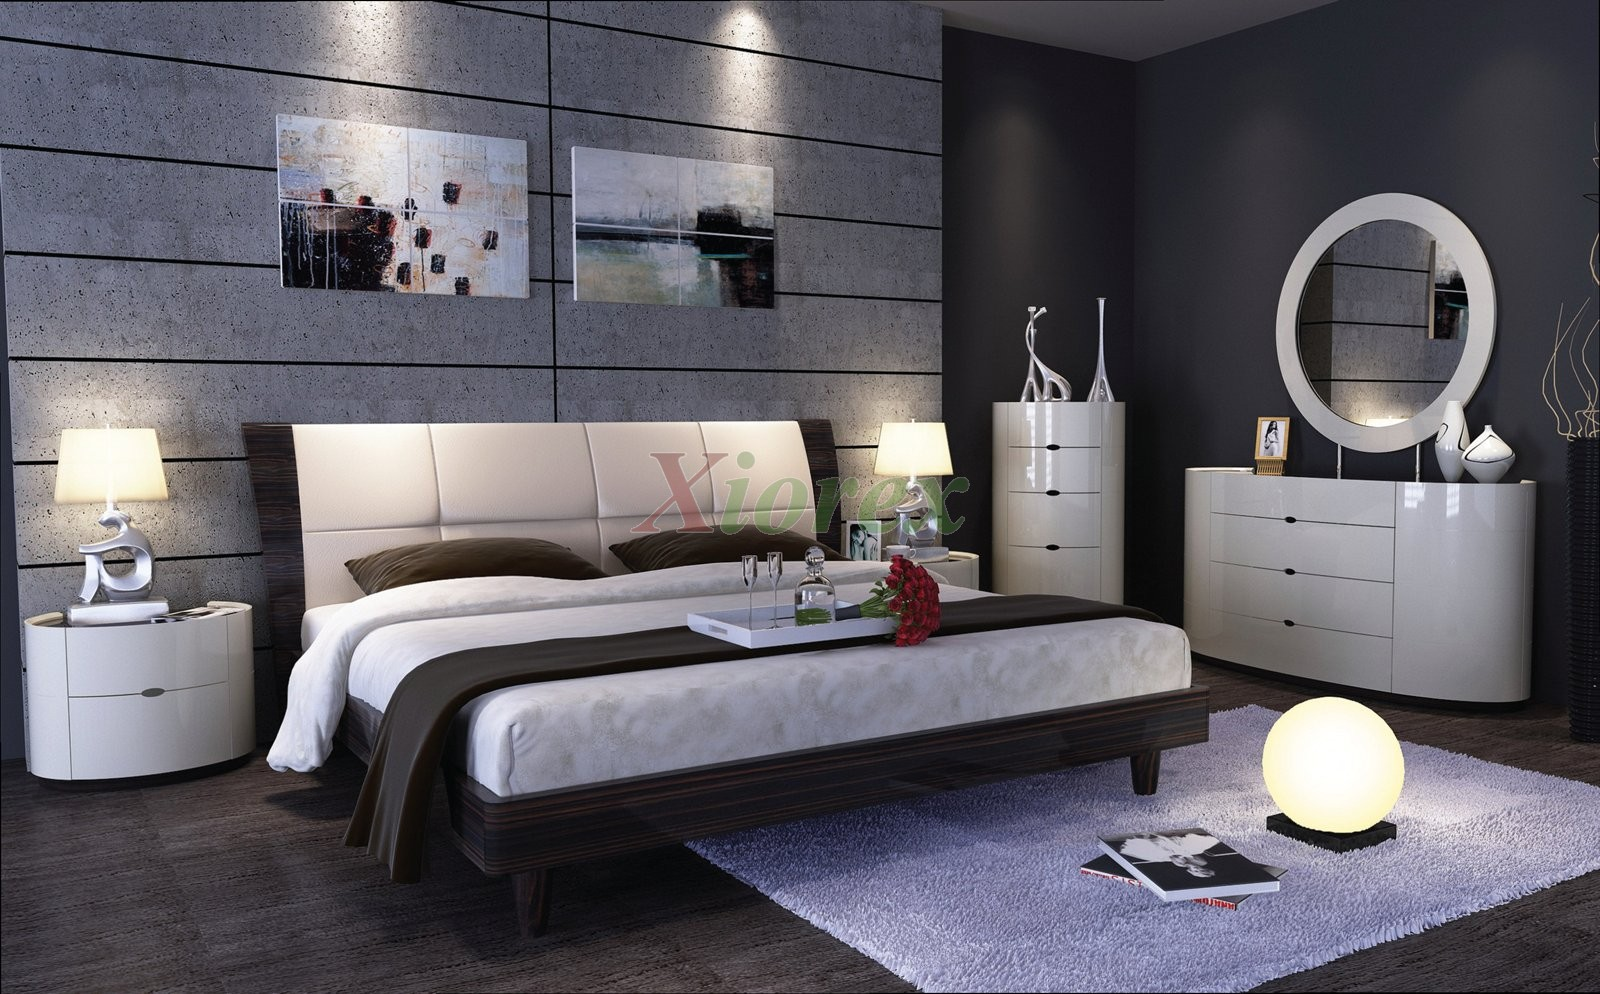 Hydra modern bed sets toronto ottawa calgary vancouver bc - Contemporary modern bedroom sets ...